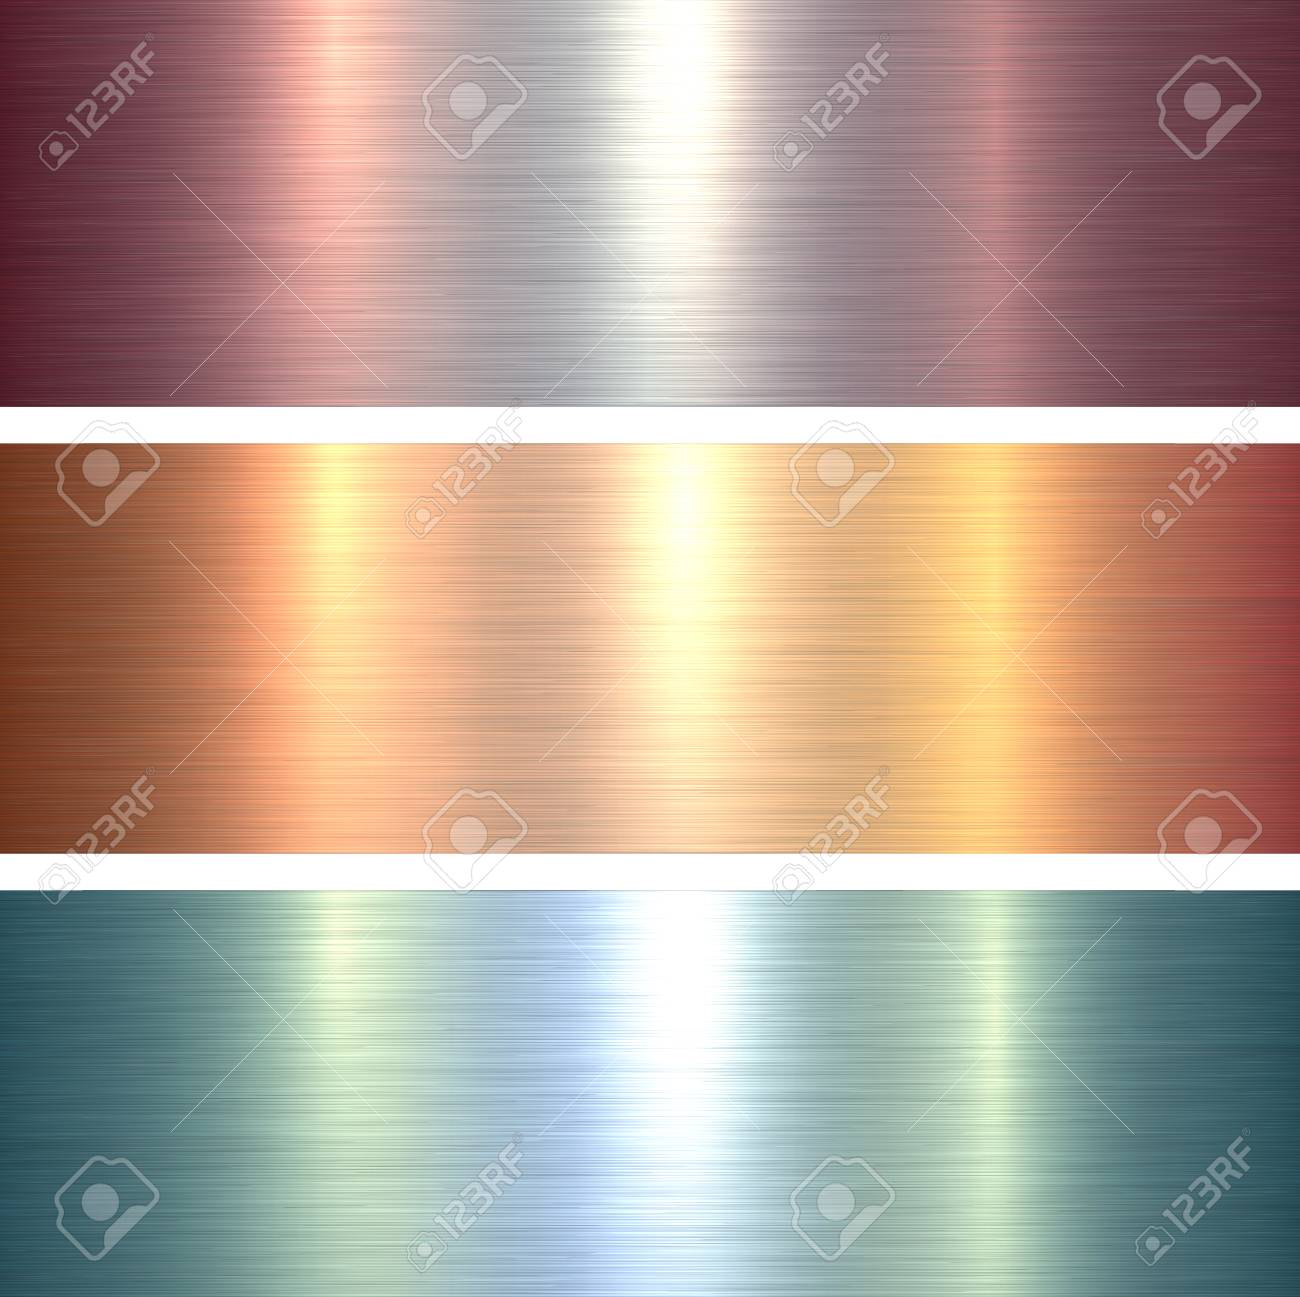 Metal texture backgrounds blue and gold brushed metallic texture metal texture backgrounds blue and gold brushed metallic texture plate 82994020 voltagebd Choice Image